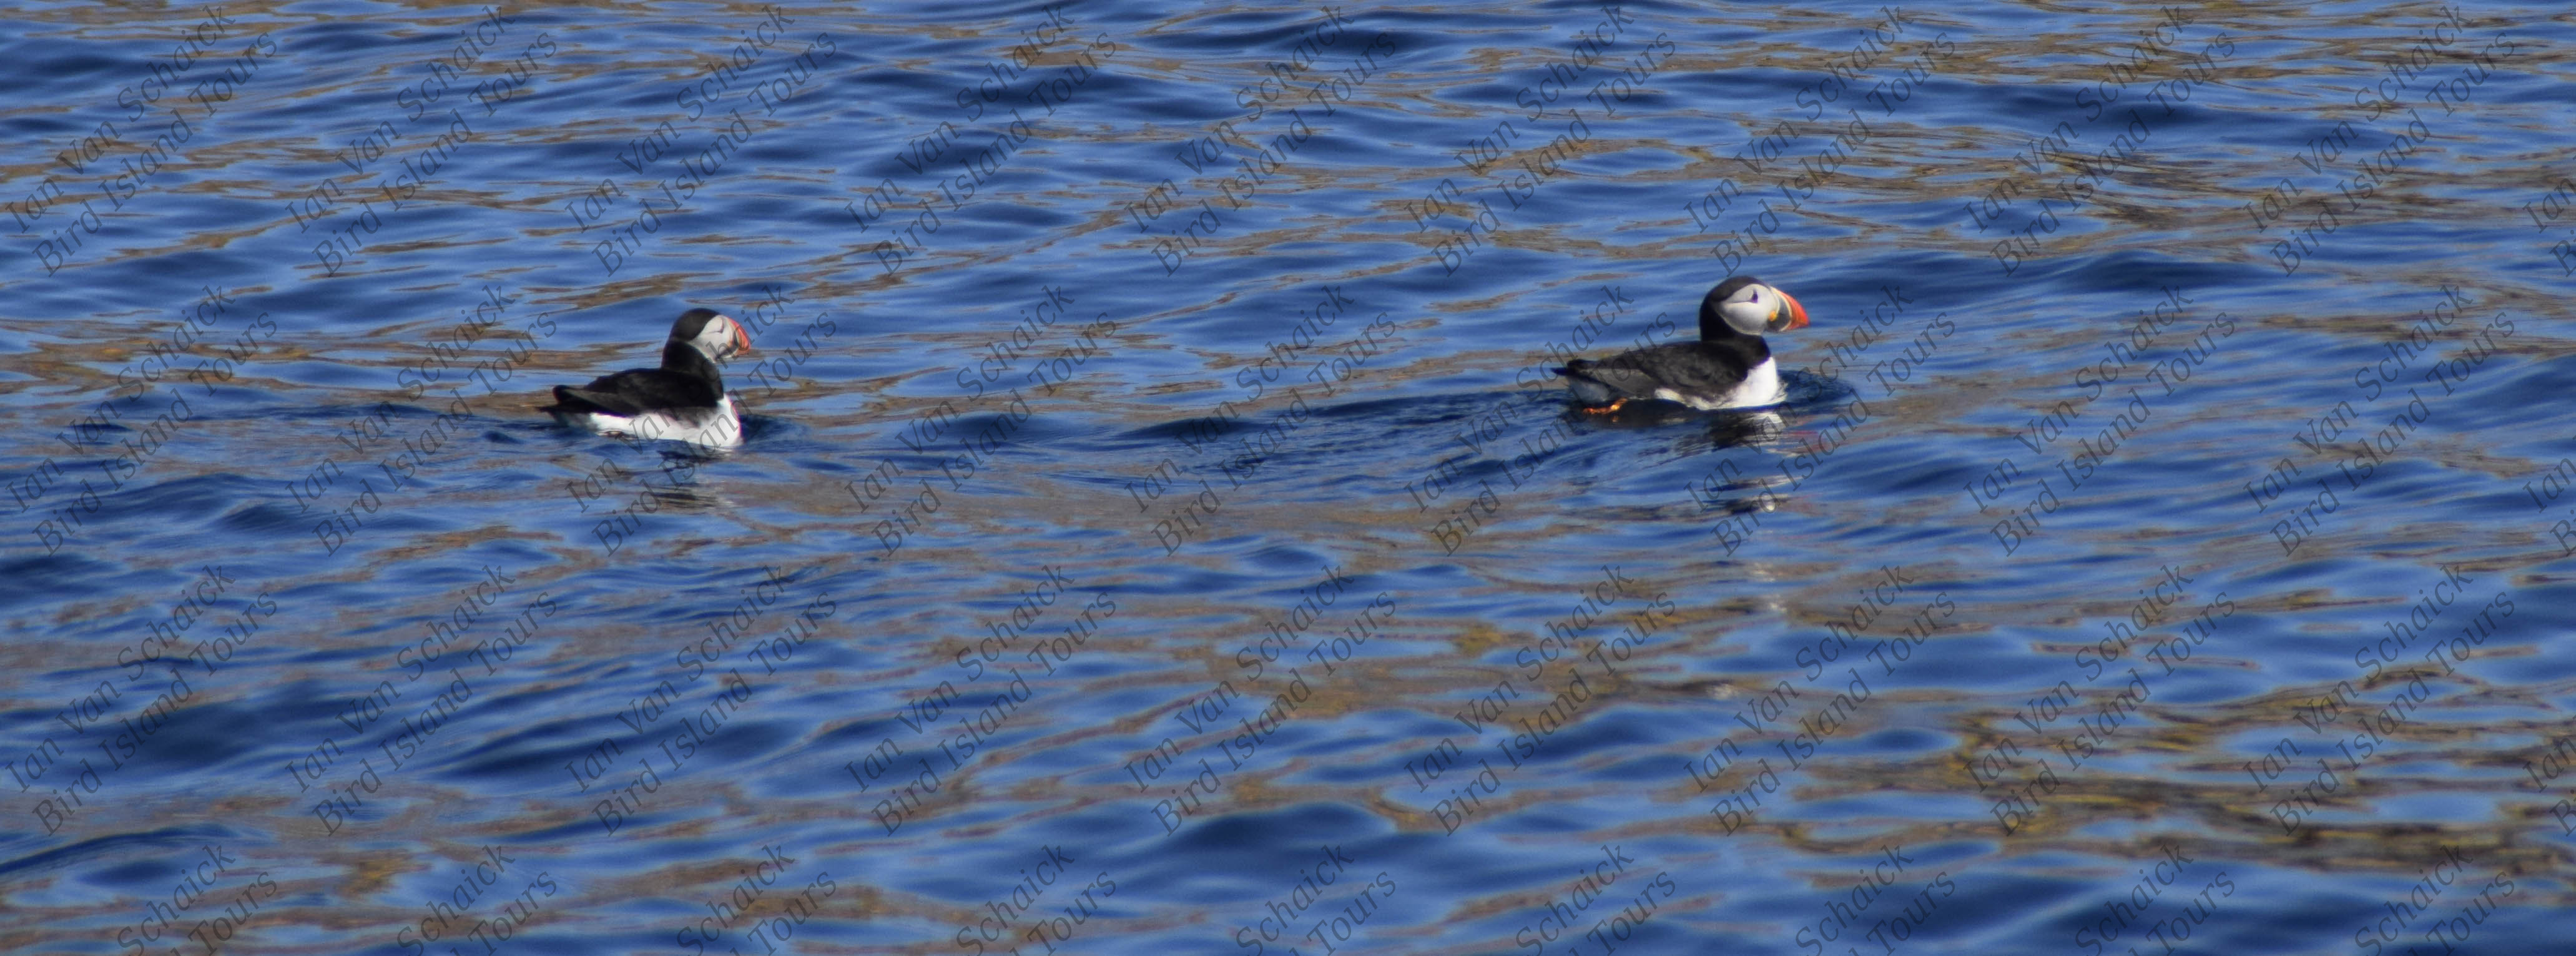 Two puffins on the water